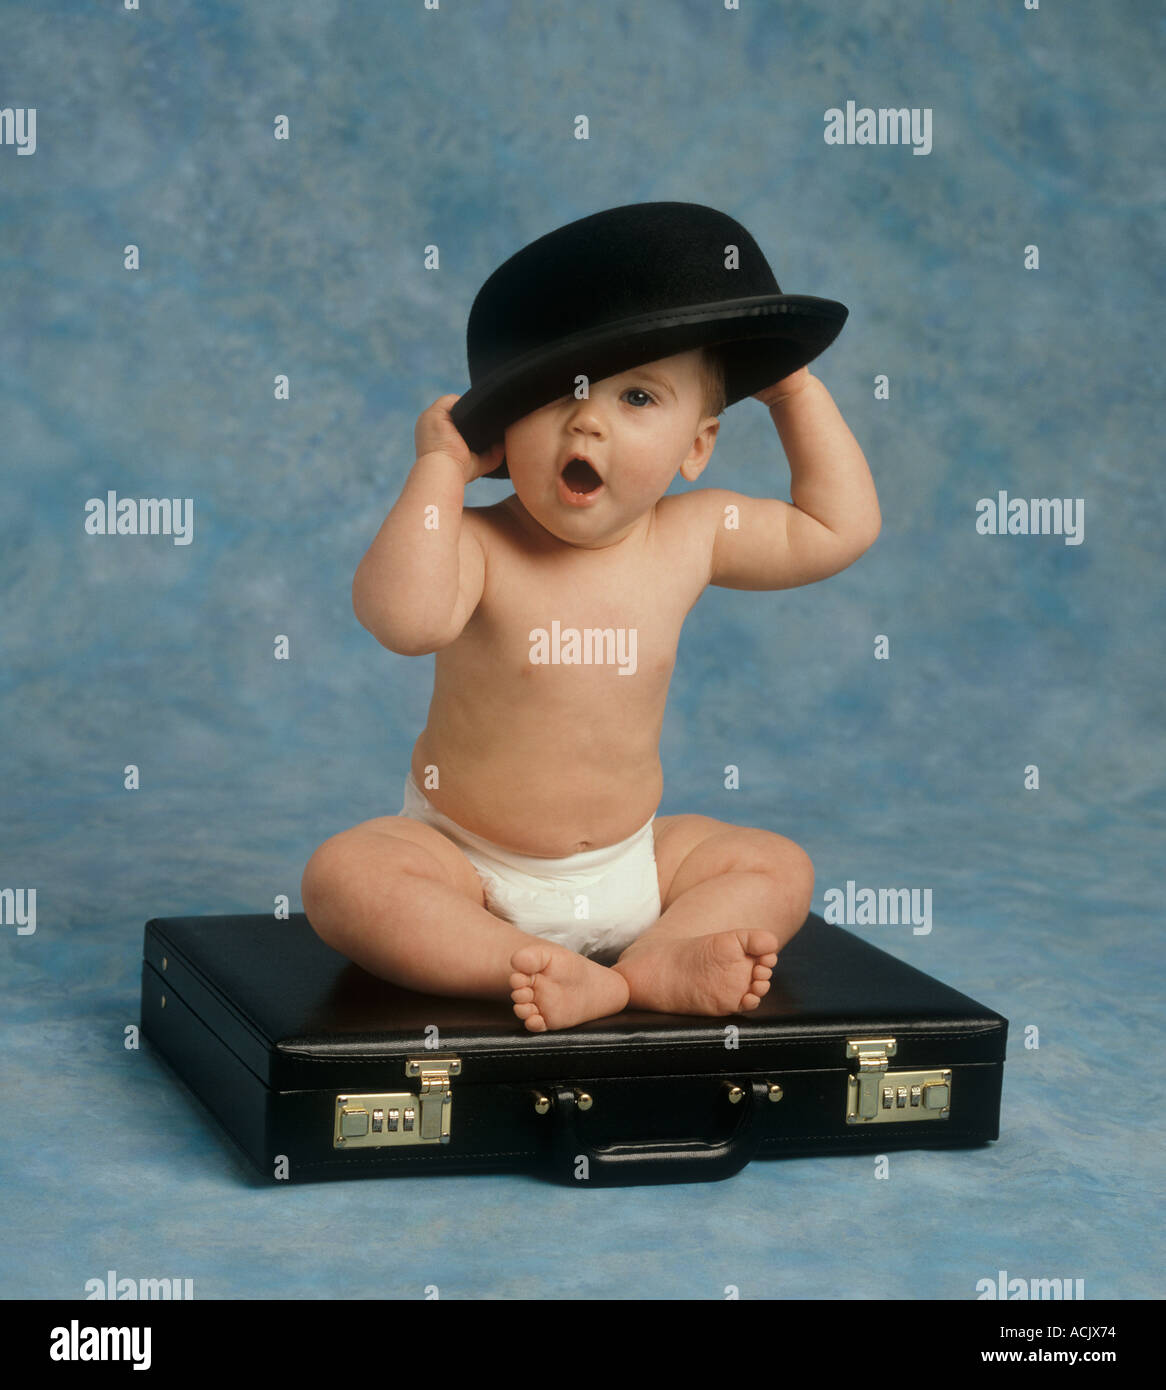 Human baby approx 8 months in nappy sitting on black brief case putting bowler  hat on head shouting a4d27cc324db